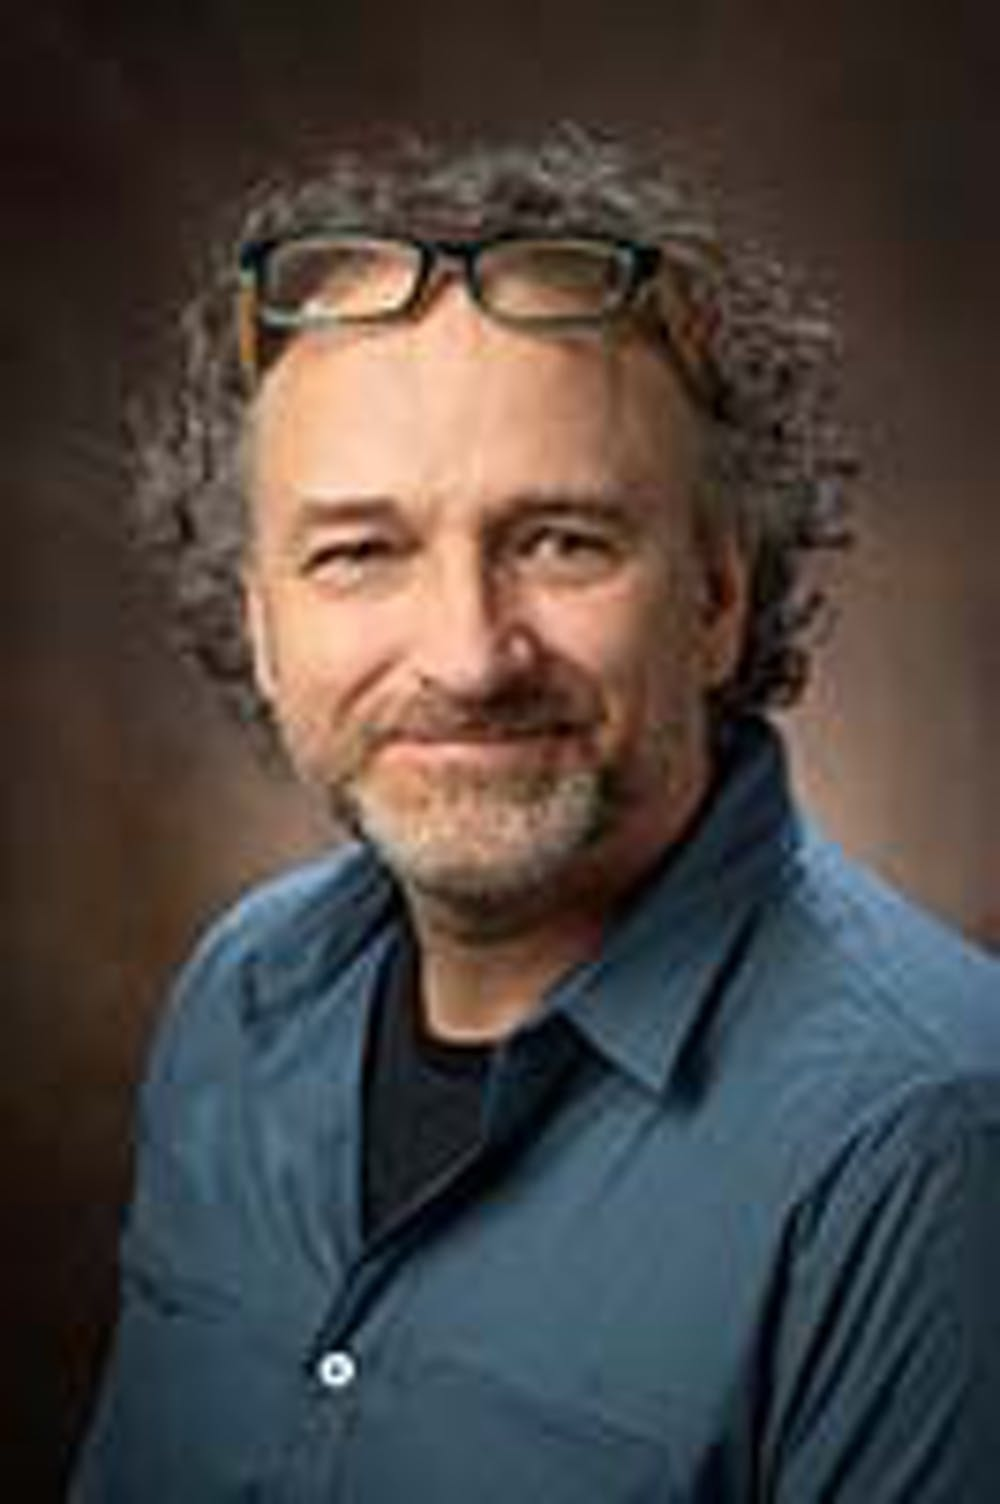 <p>Entrepreneurship professor David Eyman is widely loved for his passion and creativity.</p>